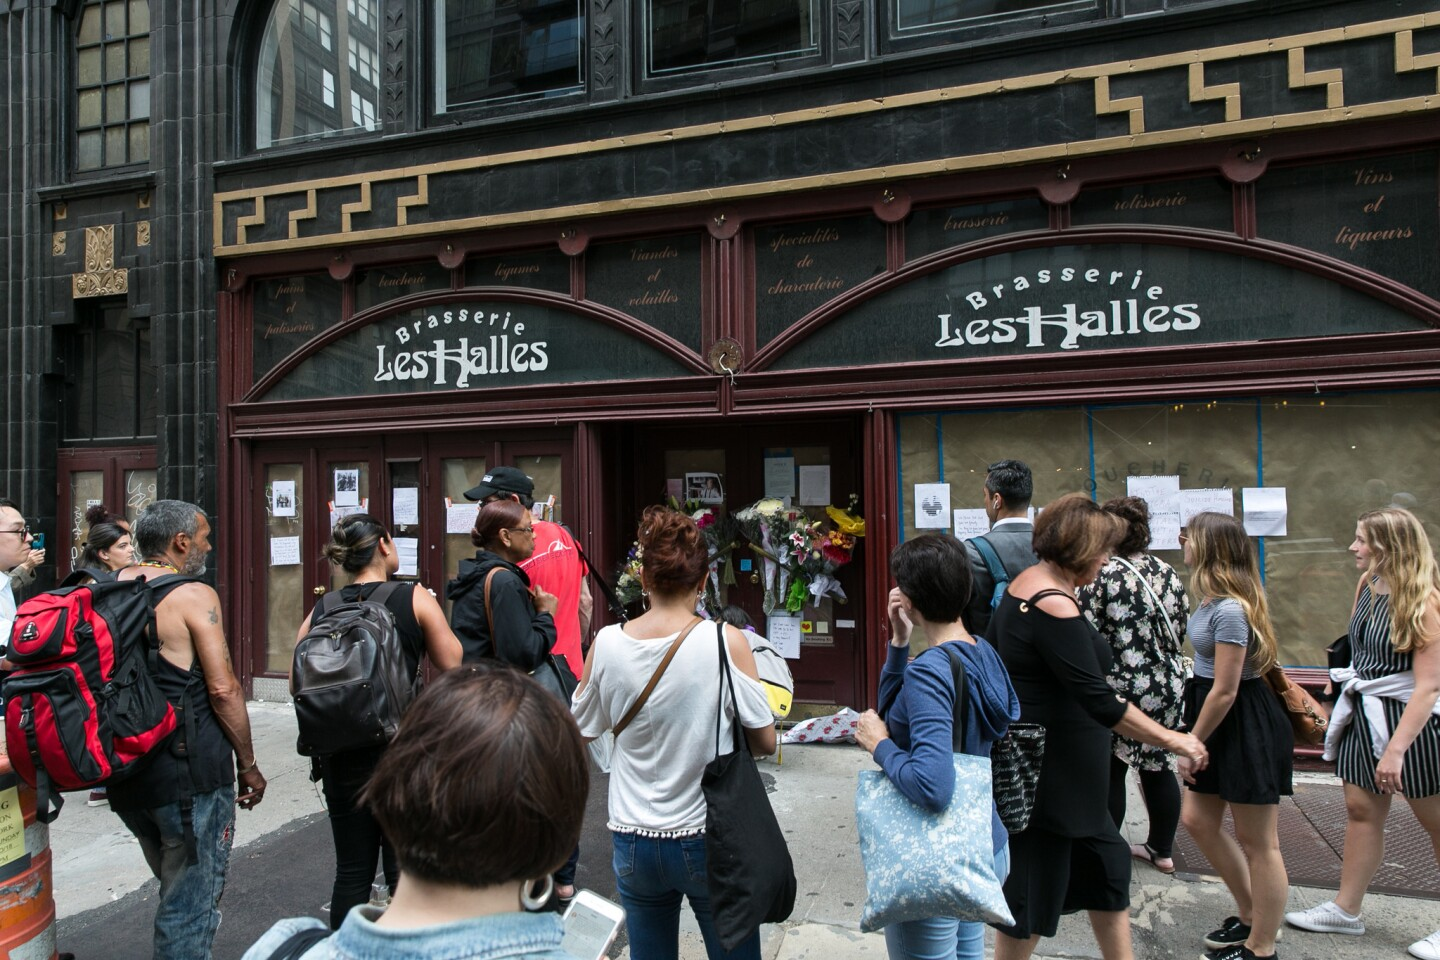 Fans gather to grieve and remember Anthony Bourdain on Friday afternoon, June 8, 2018, at French restaurant Brasserie Les Halles on Park Ave. South, where he once worked as executive chef. The iconic television host died early this morning in France.